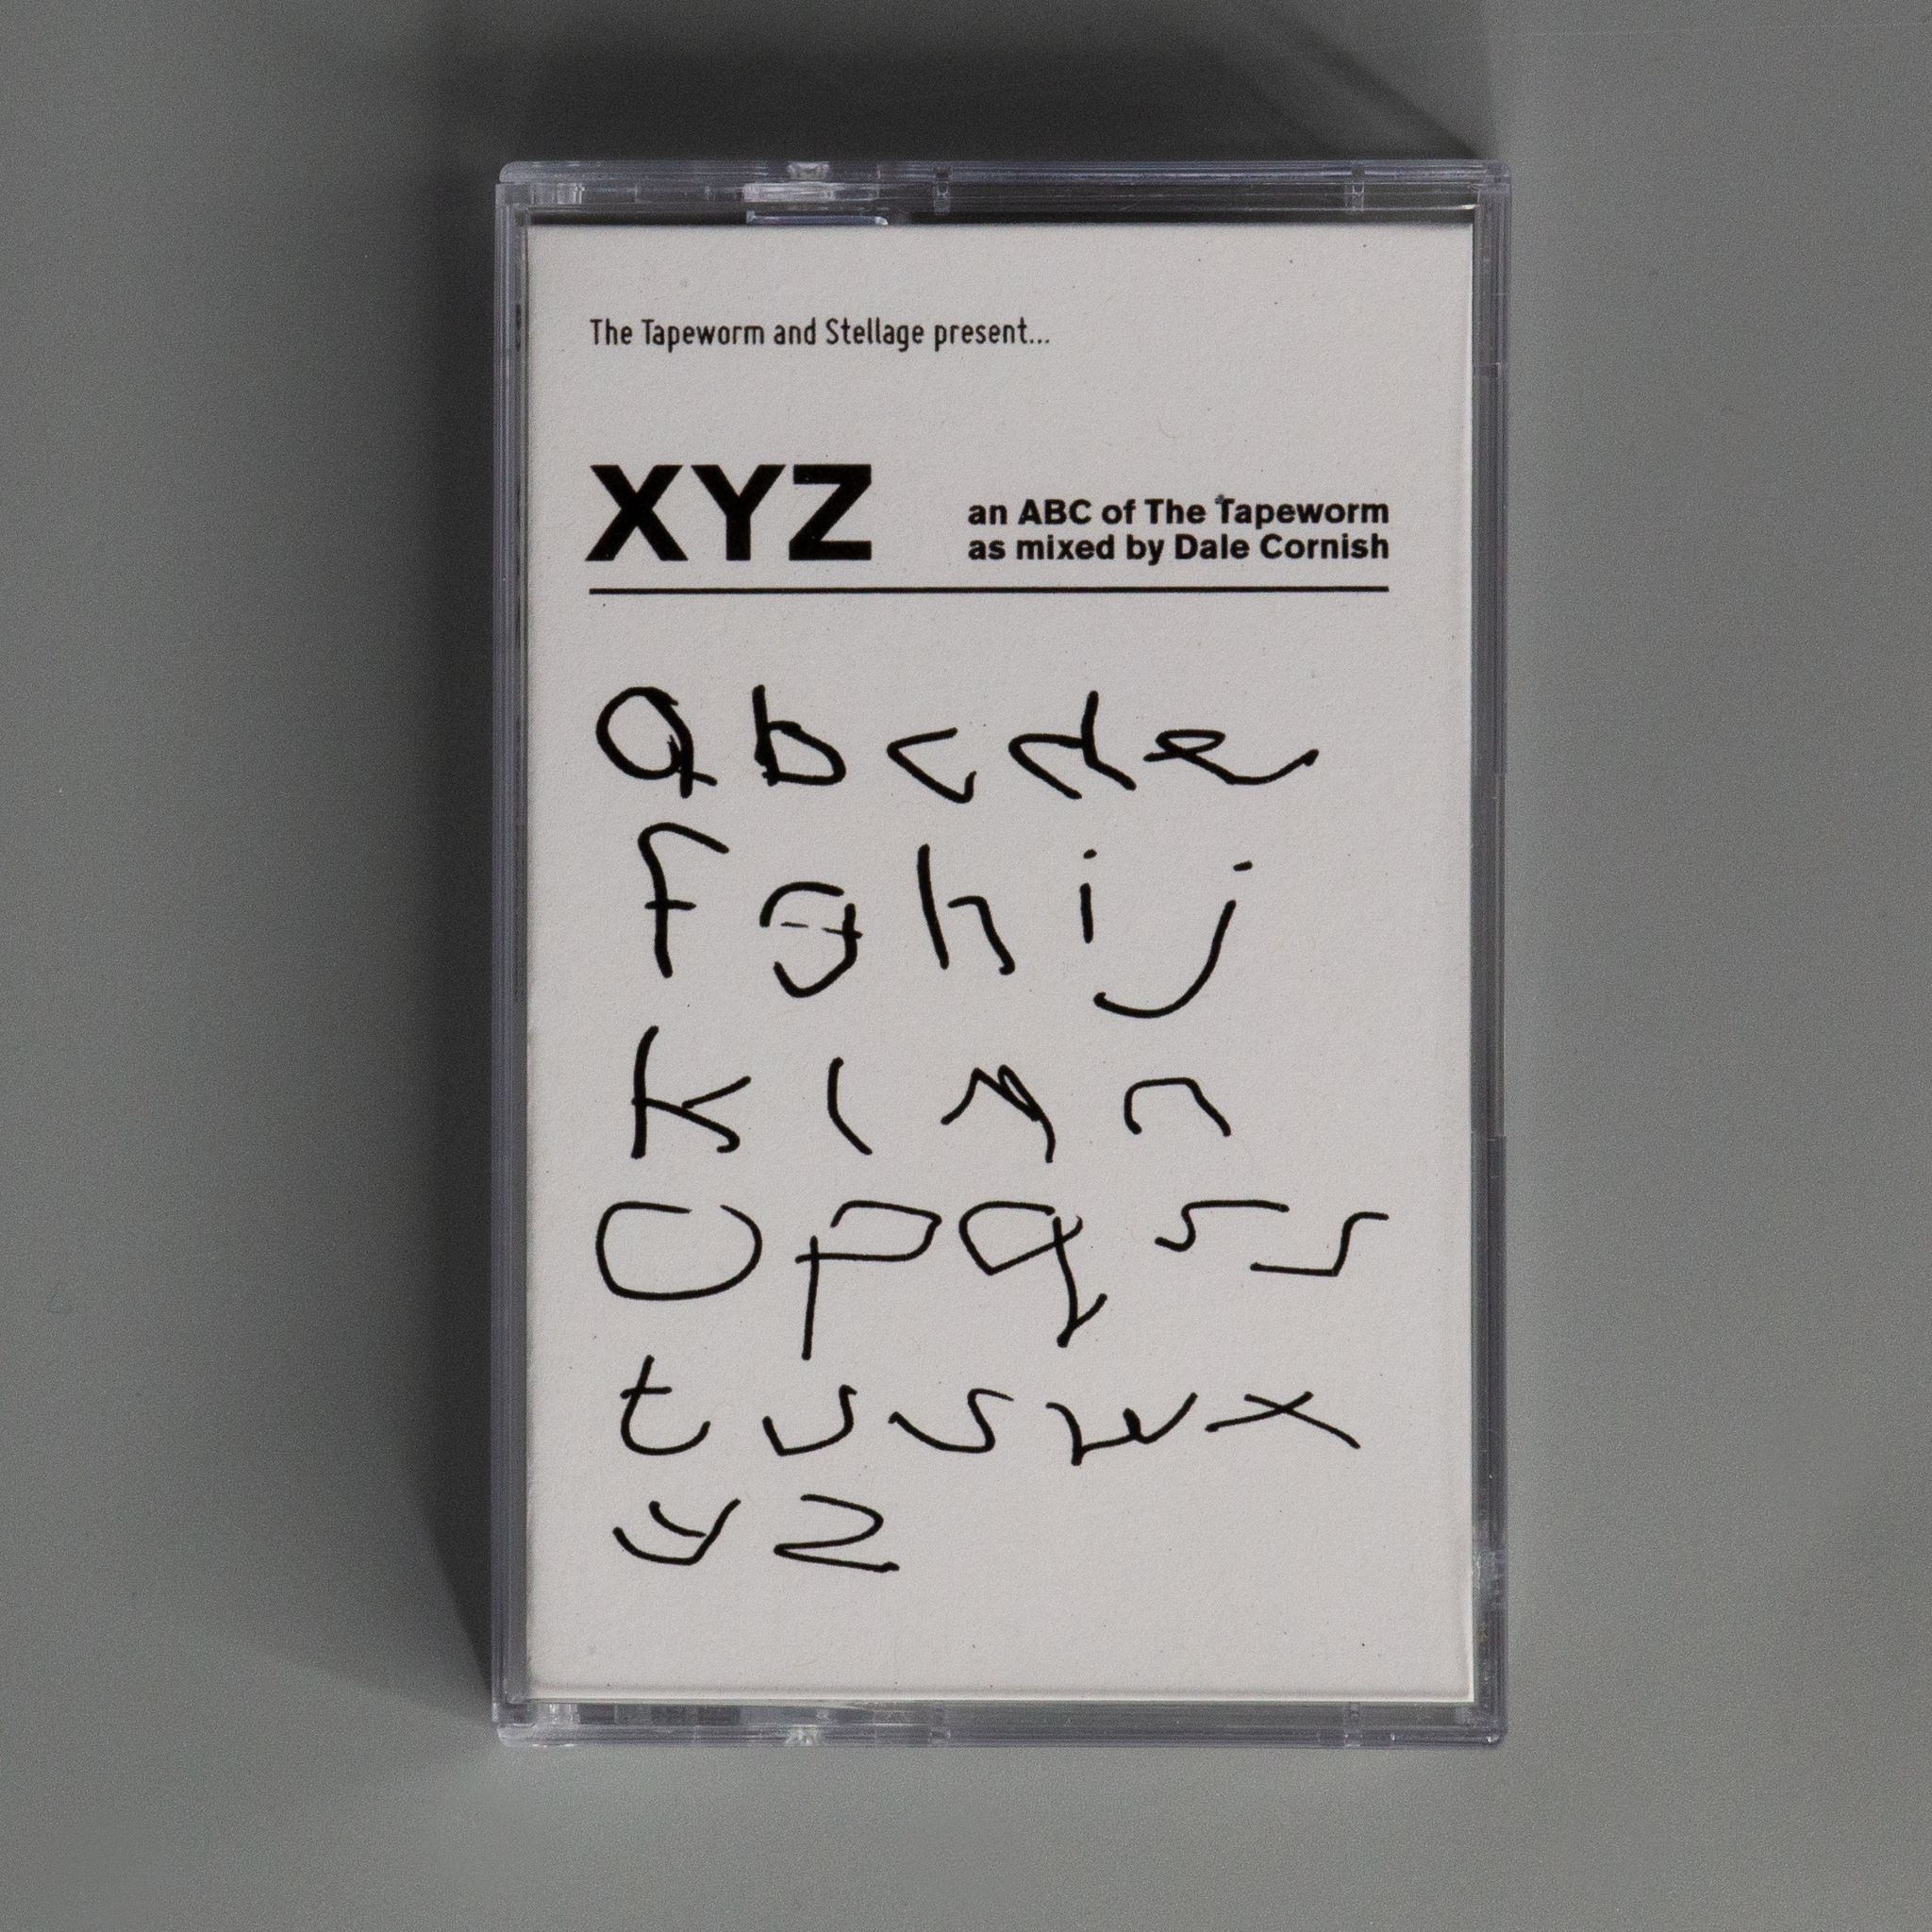 XYZ an ABC of The Tapeworm as mixed by Dale Cornish